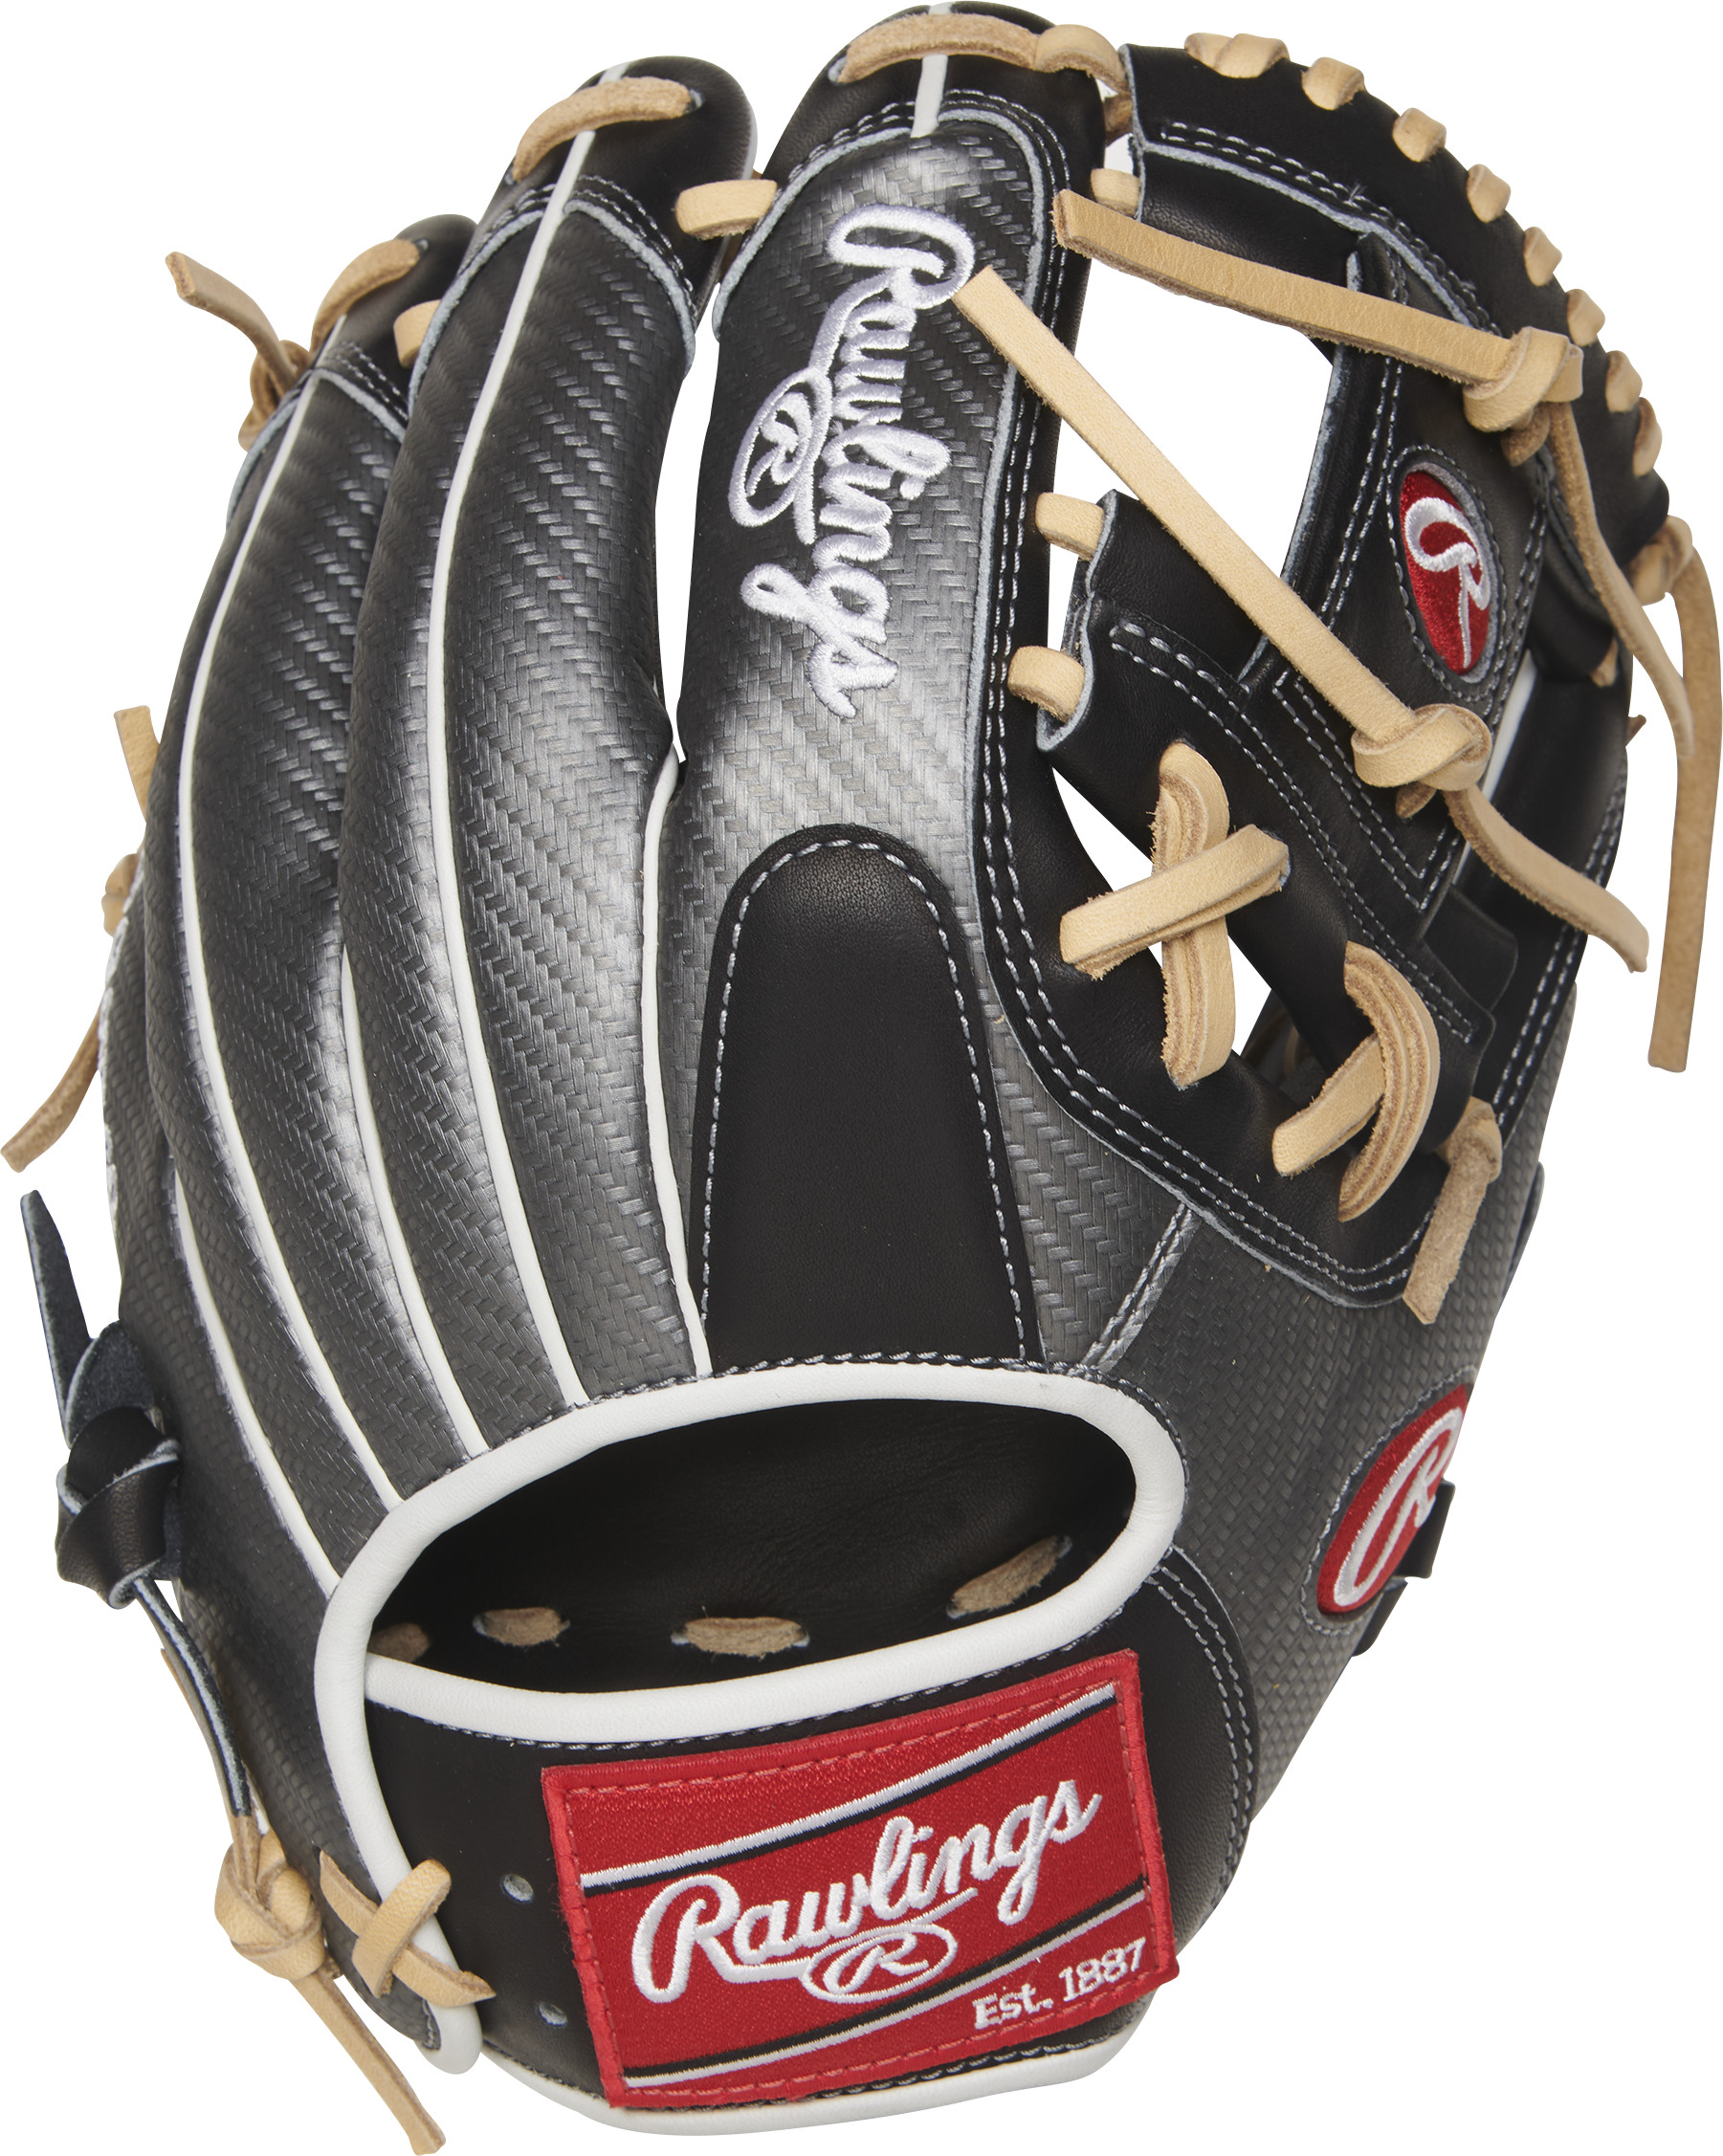 http://www.bestbatdeals.com/images/gloves/rawlings/PRO204-2BCF-2.jpg